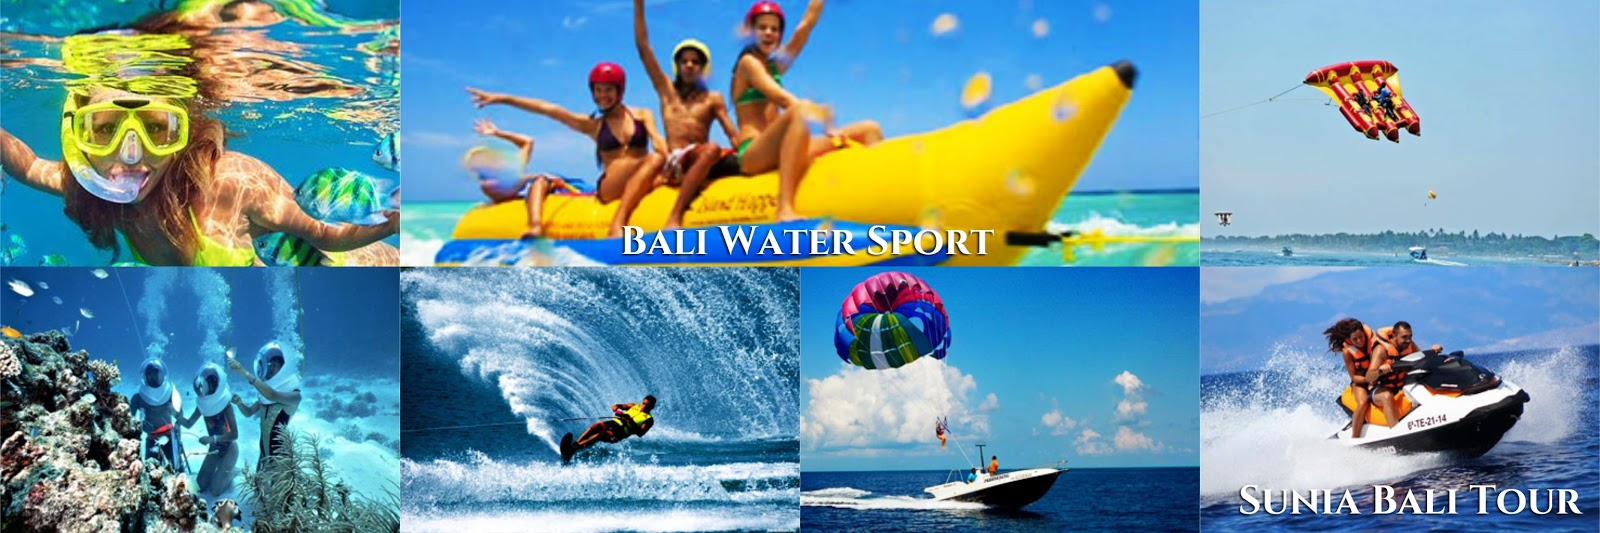 BALI WATER SPORTS TOUR | PARASAILING, BANANA BOAT, JET SKI, DONUT BOAT, WATER SKI, WAKEBOARDING, TURTLE ISLANDS, GLASS BOTTOM BOAT | Sunia Bali Tour